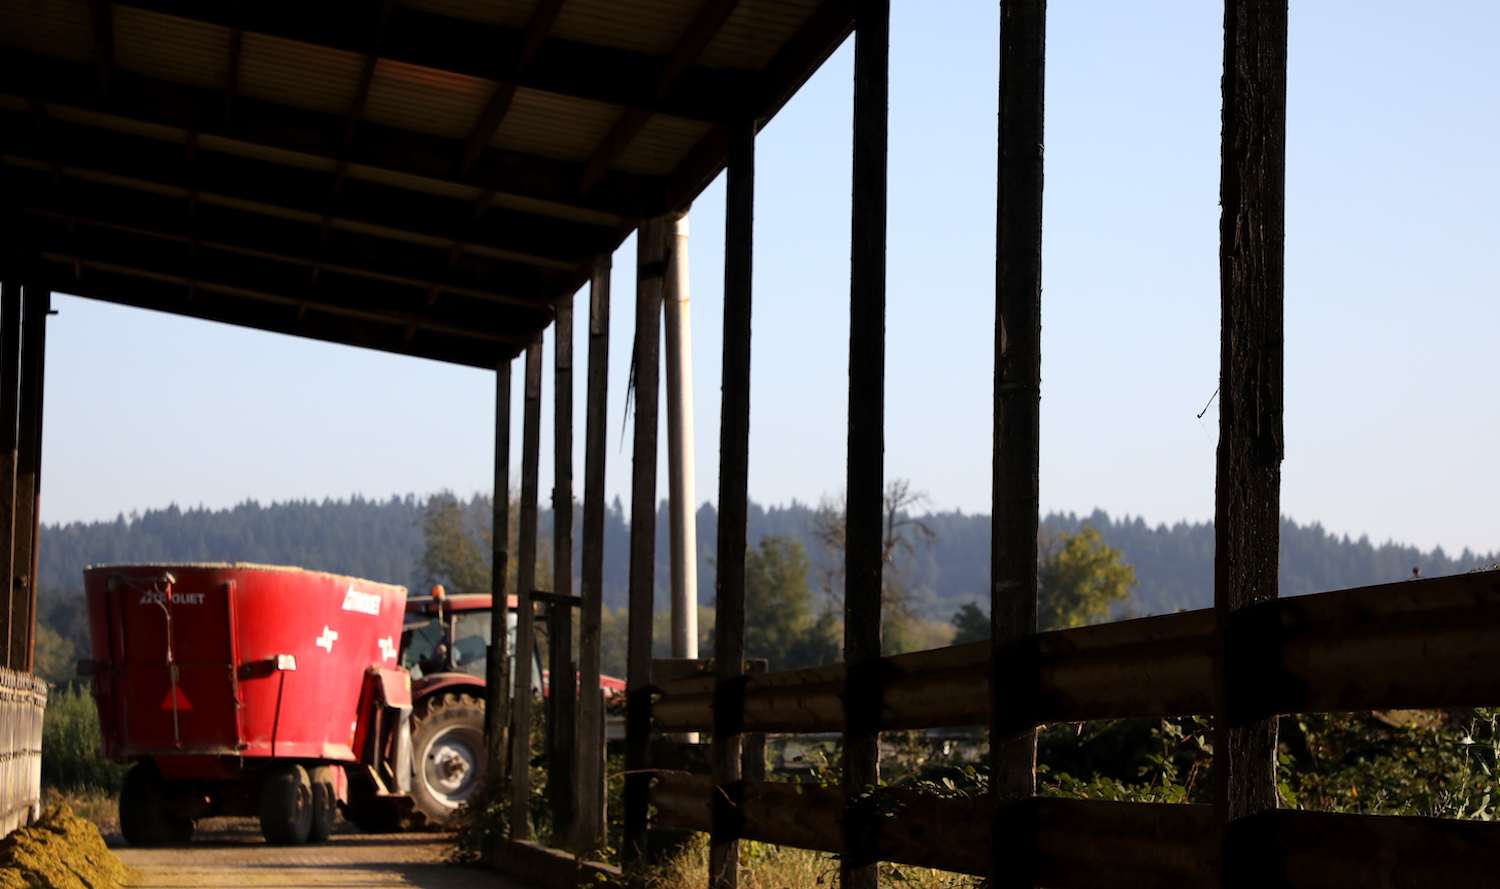 A bright red feed truck drives through a barn